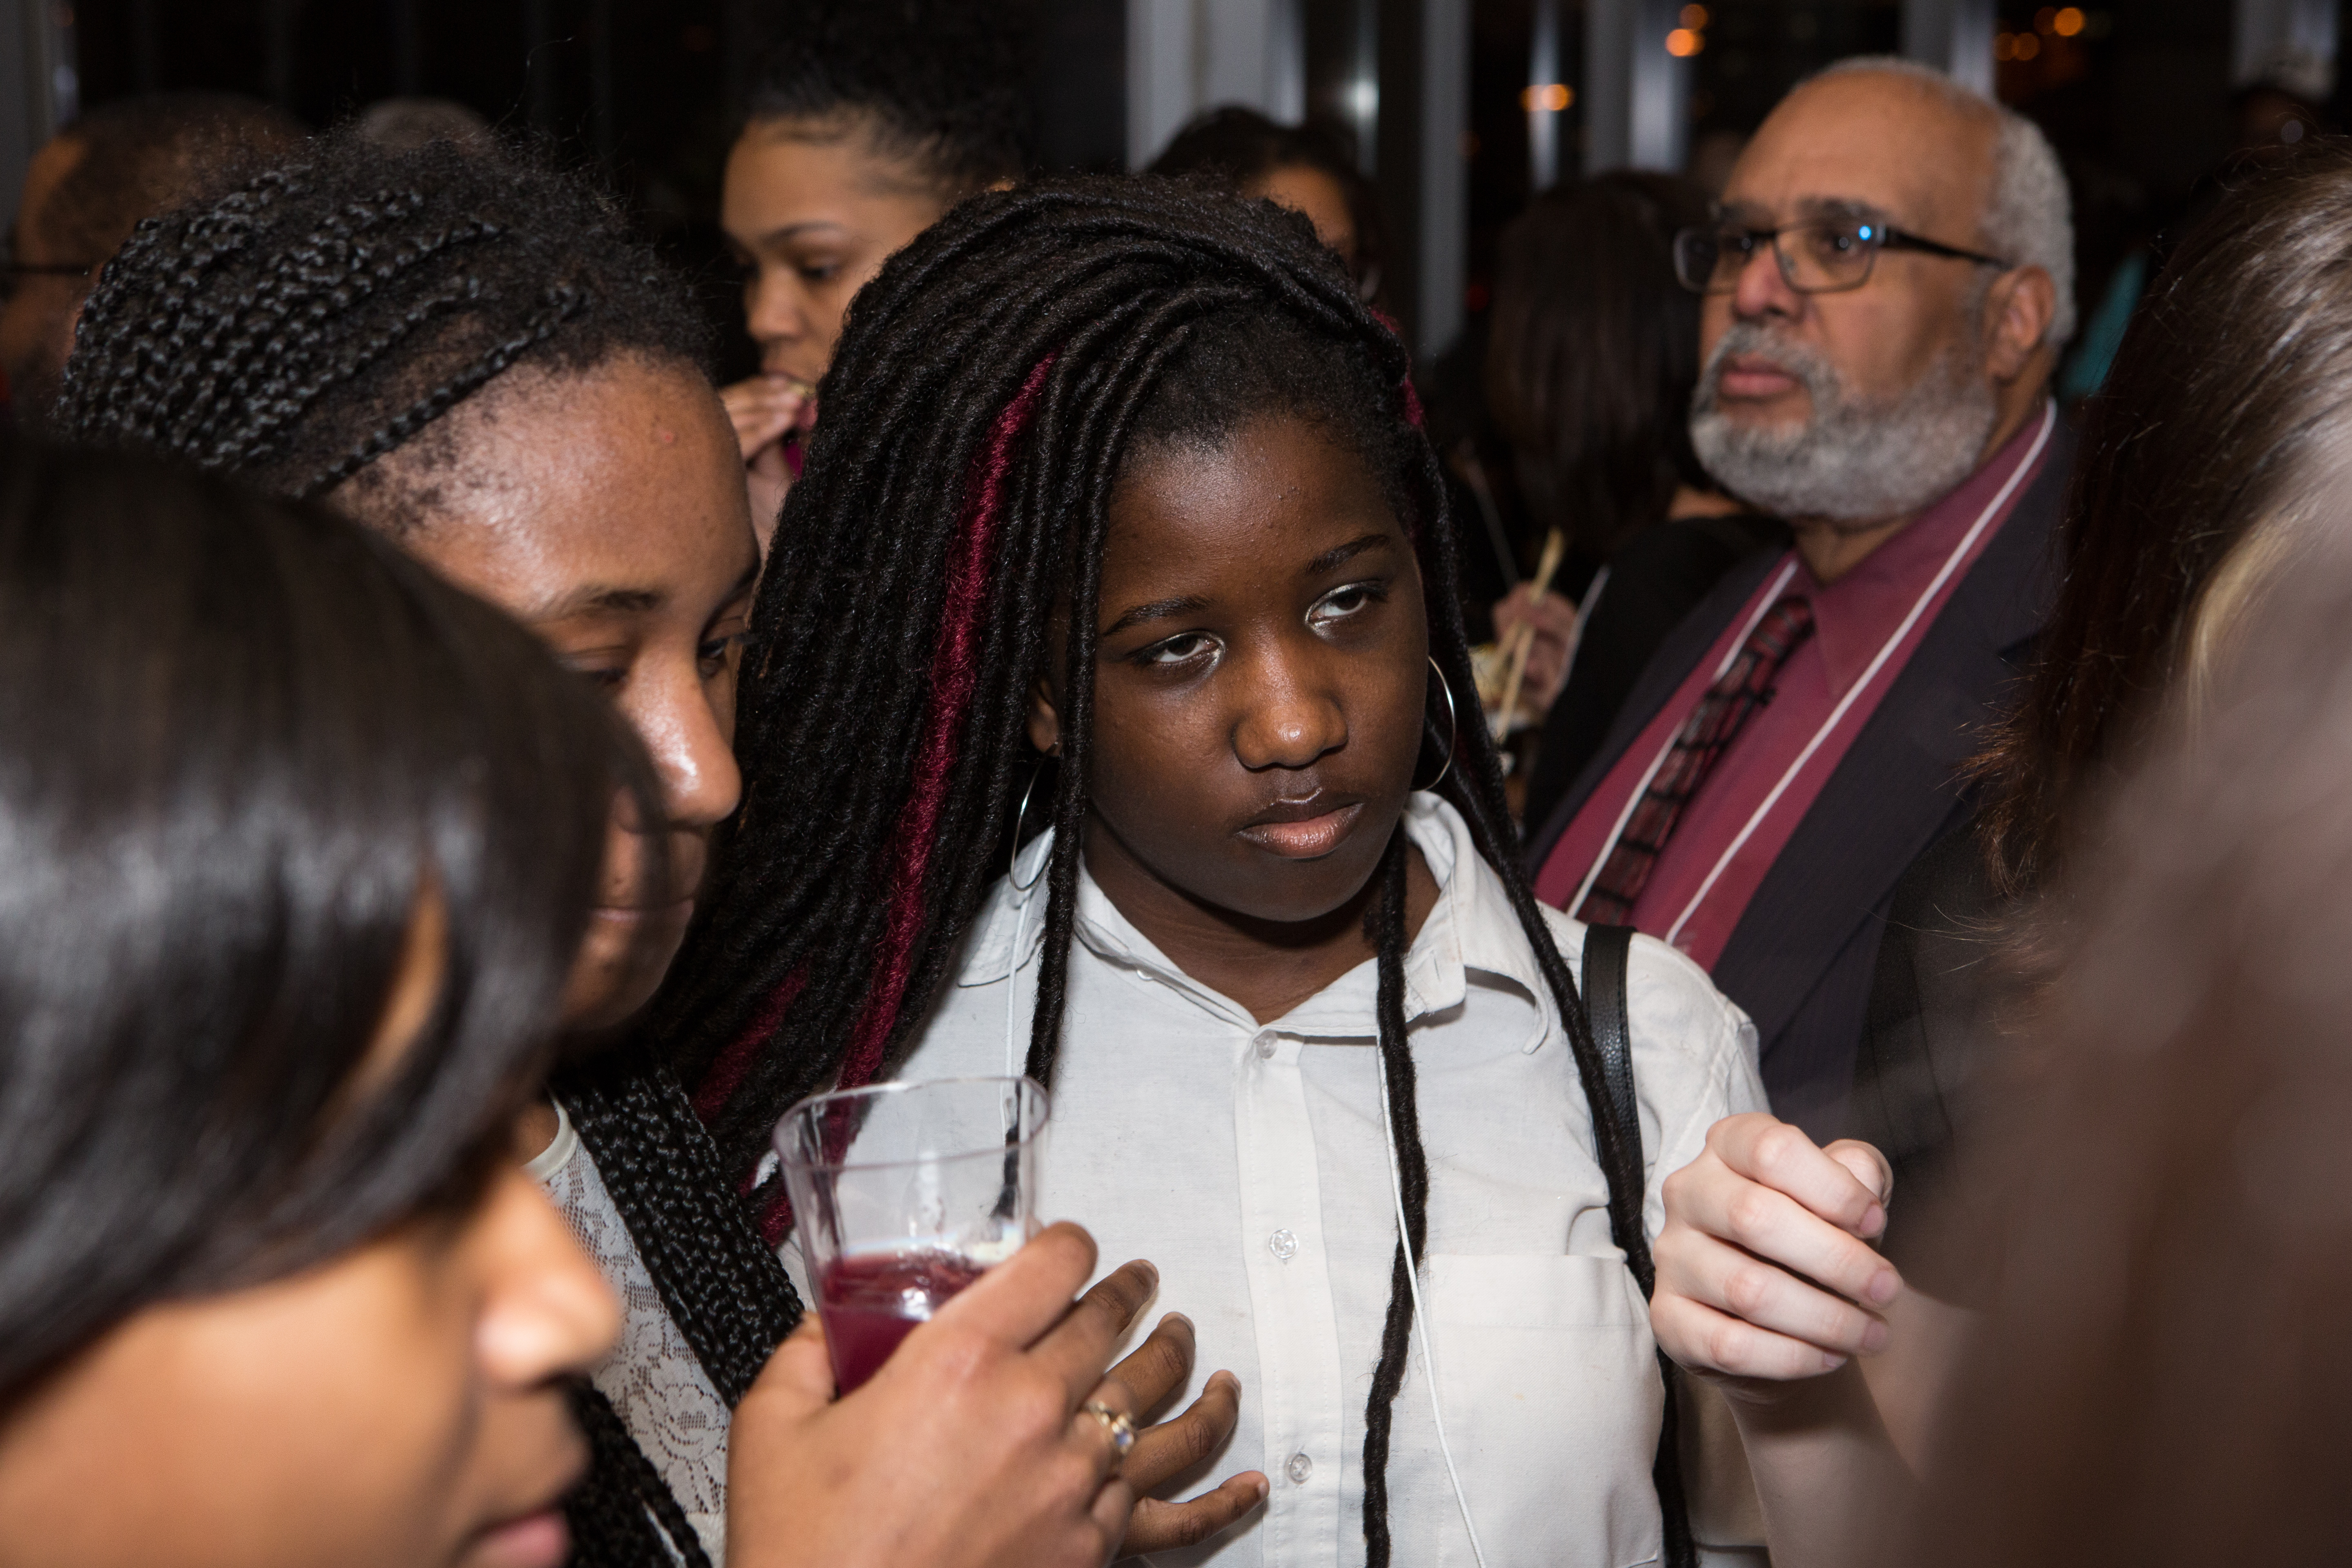 Students mingle with guests at the kickoff party.